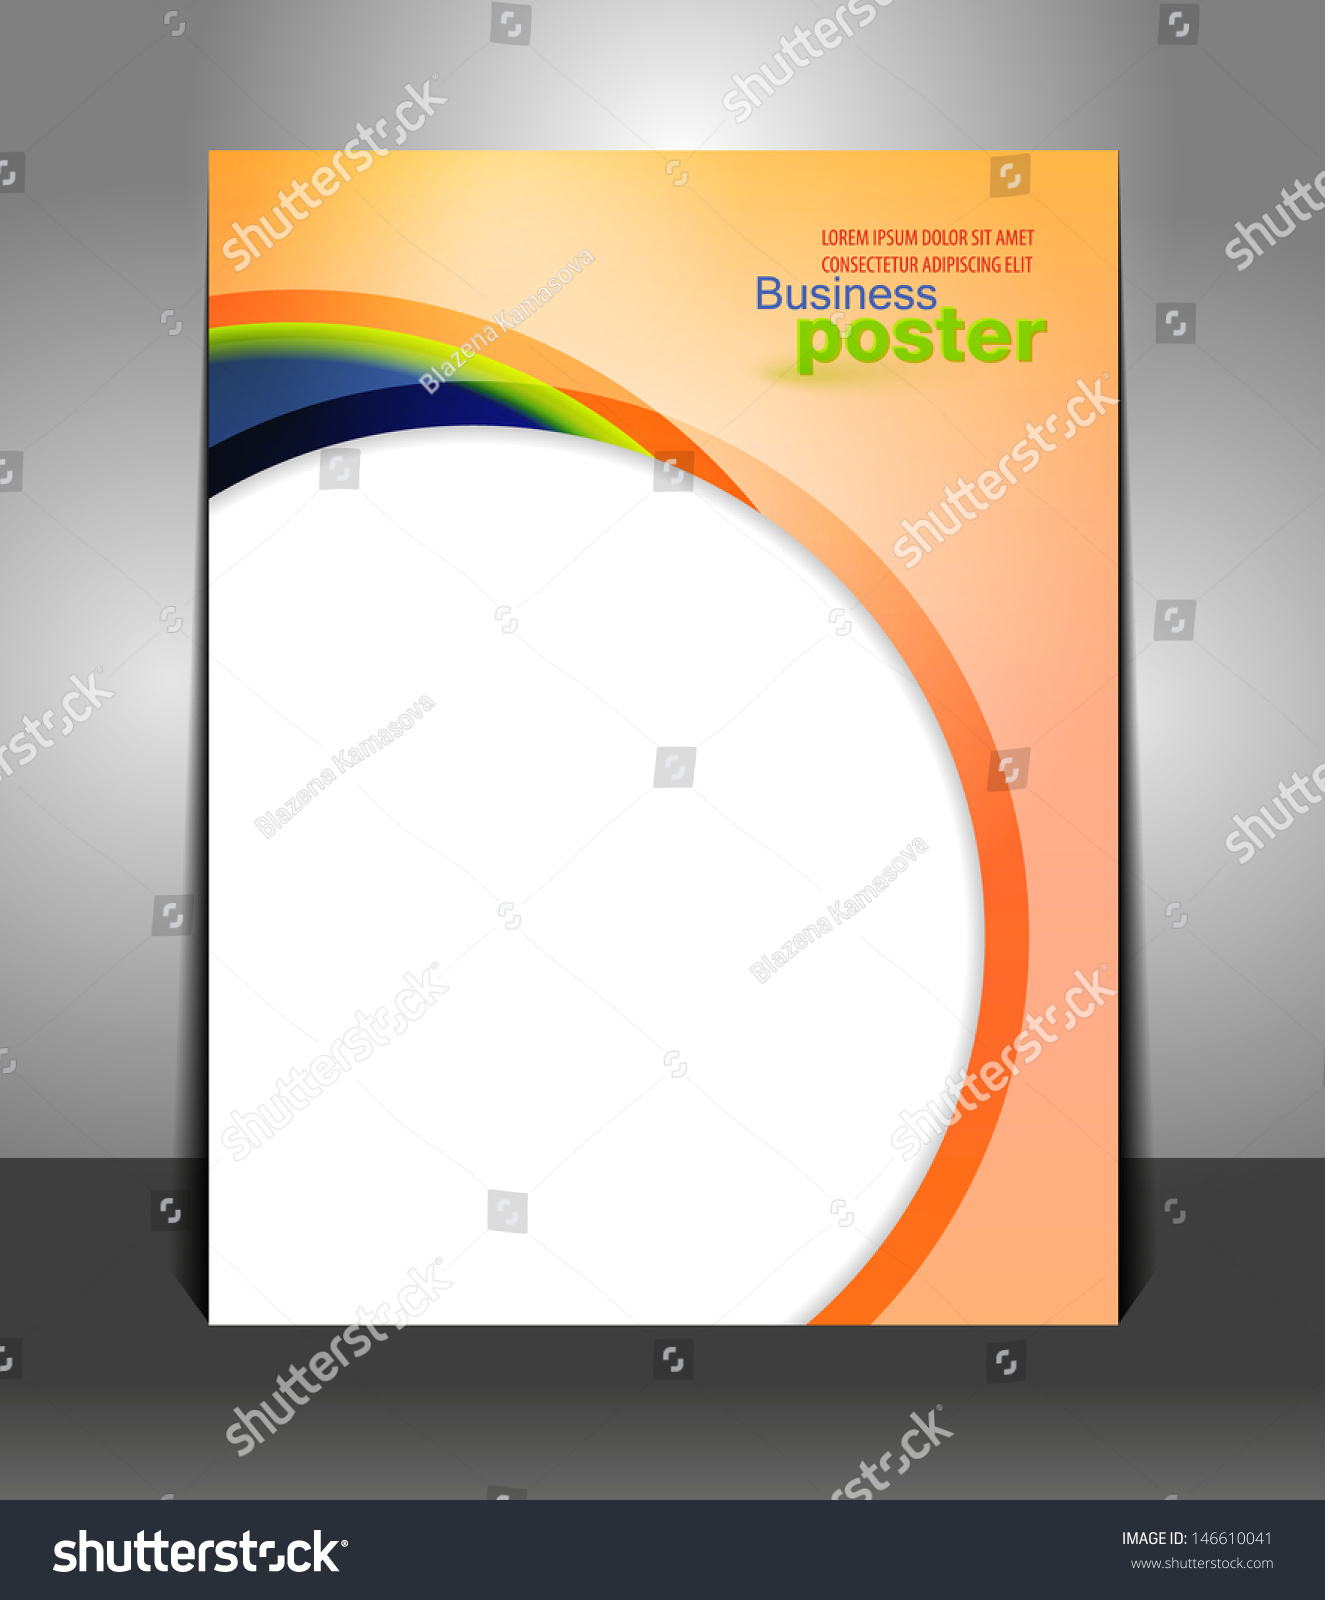 Poster design layout templates - Design Layout Template Preview Save To A Lightbox